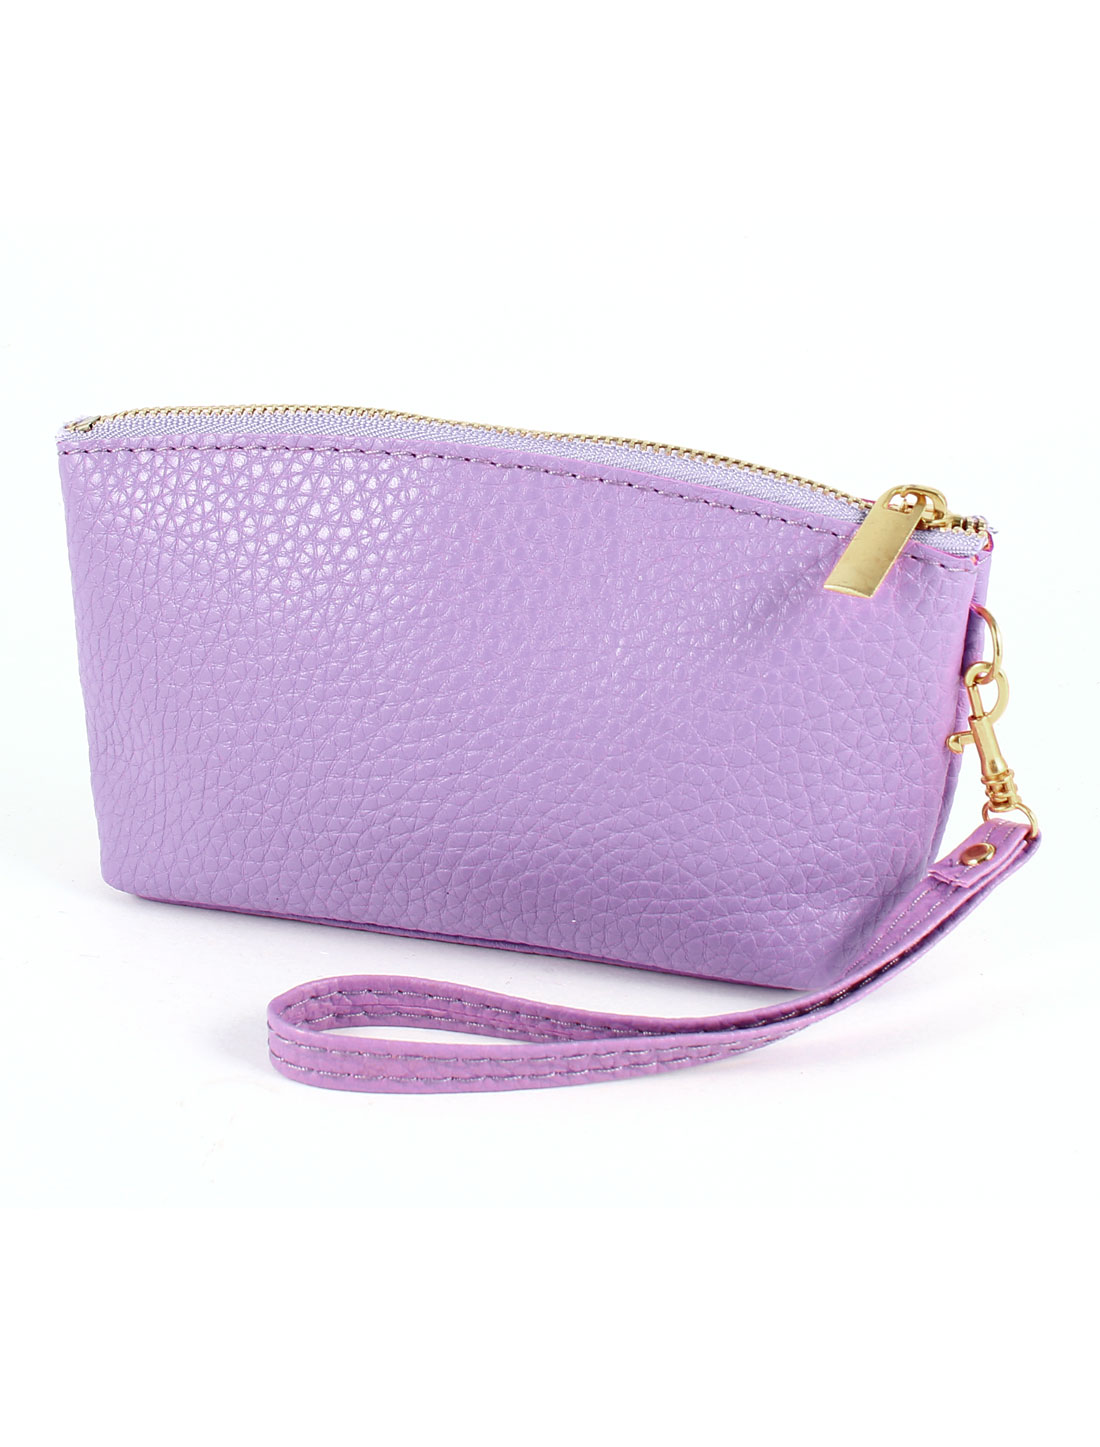 Lady Purple Litchi Pattern Faux Leather 3 Compartments Phone Change Bag Pouch